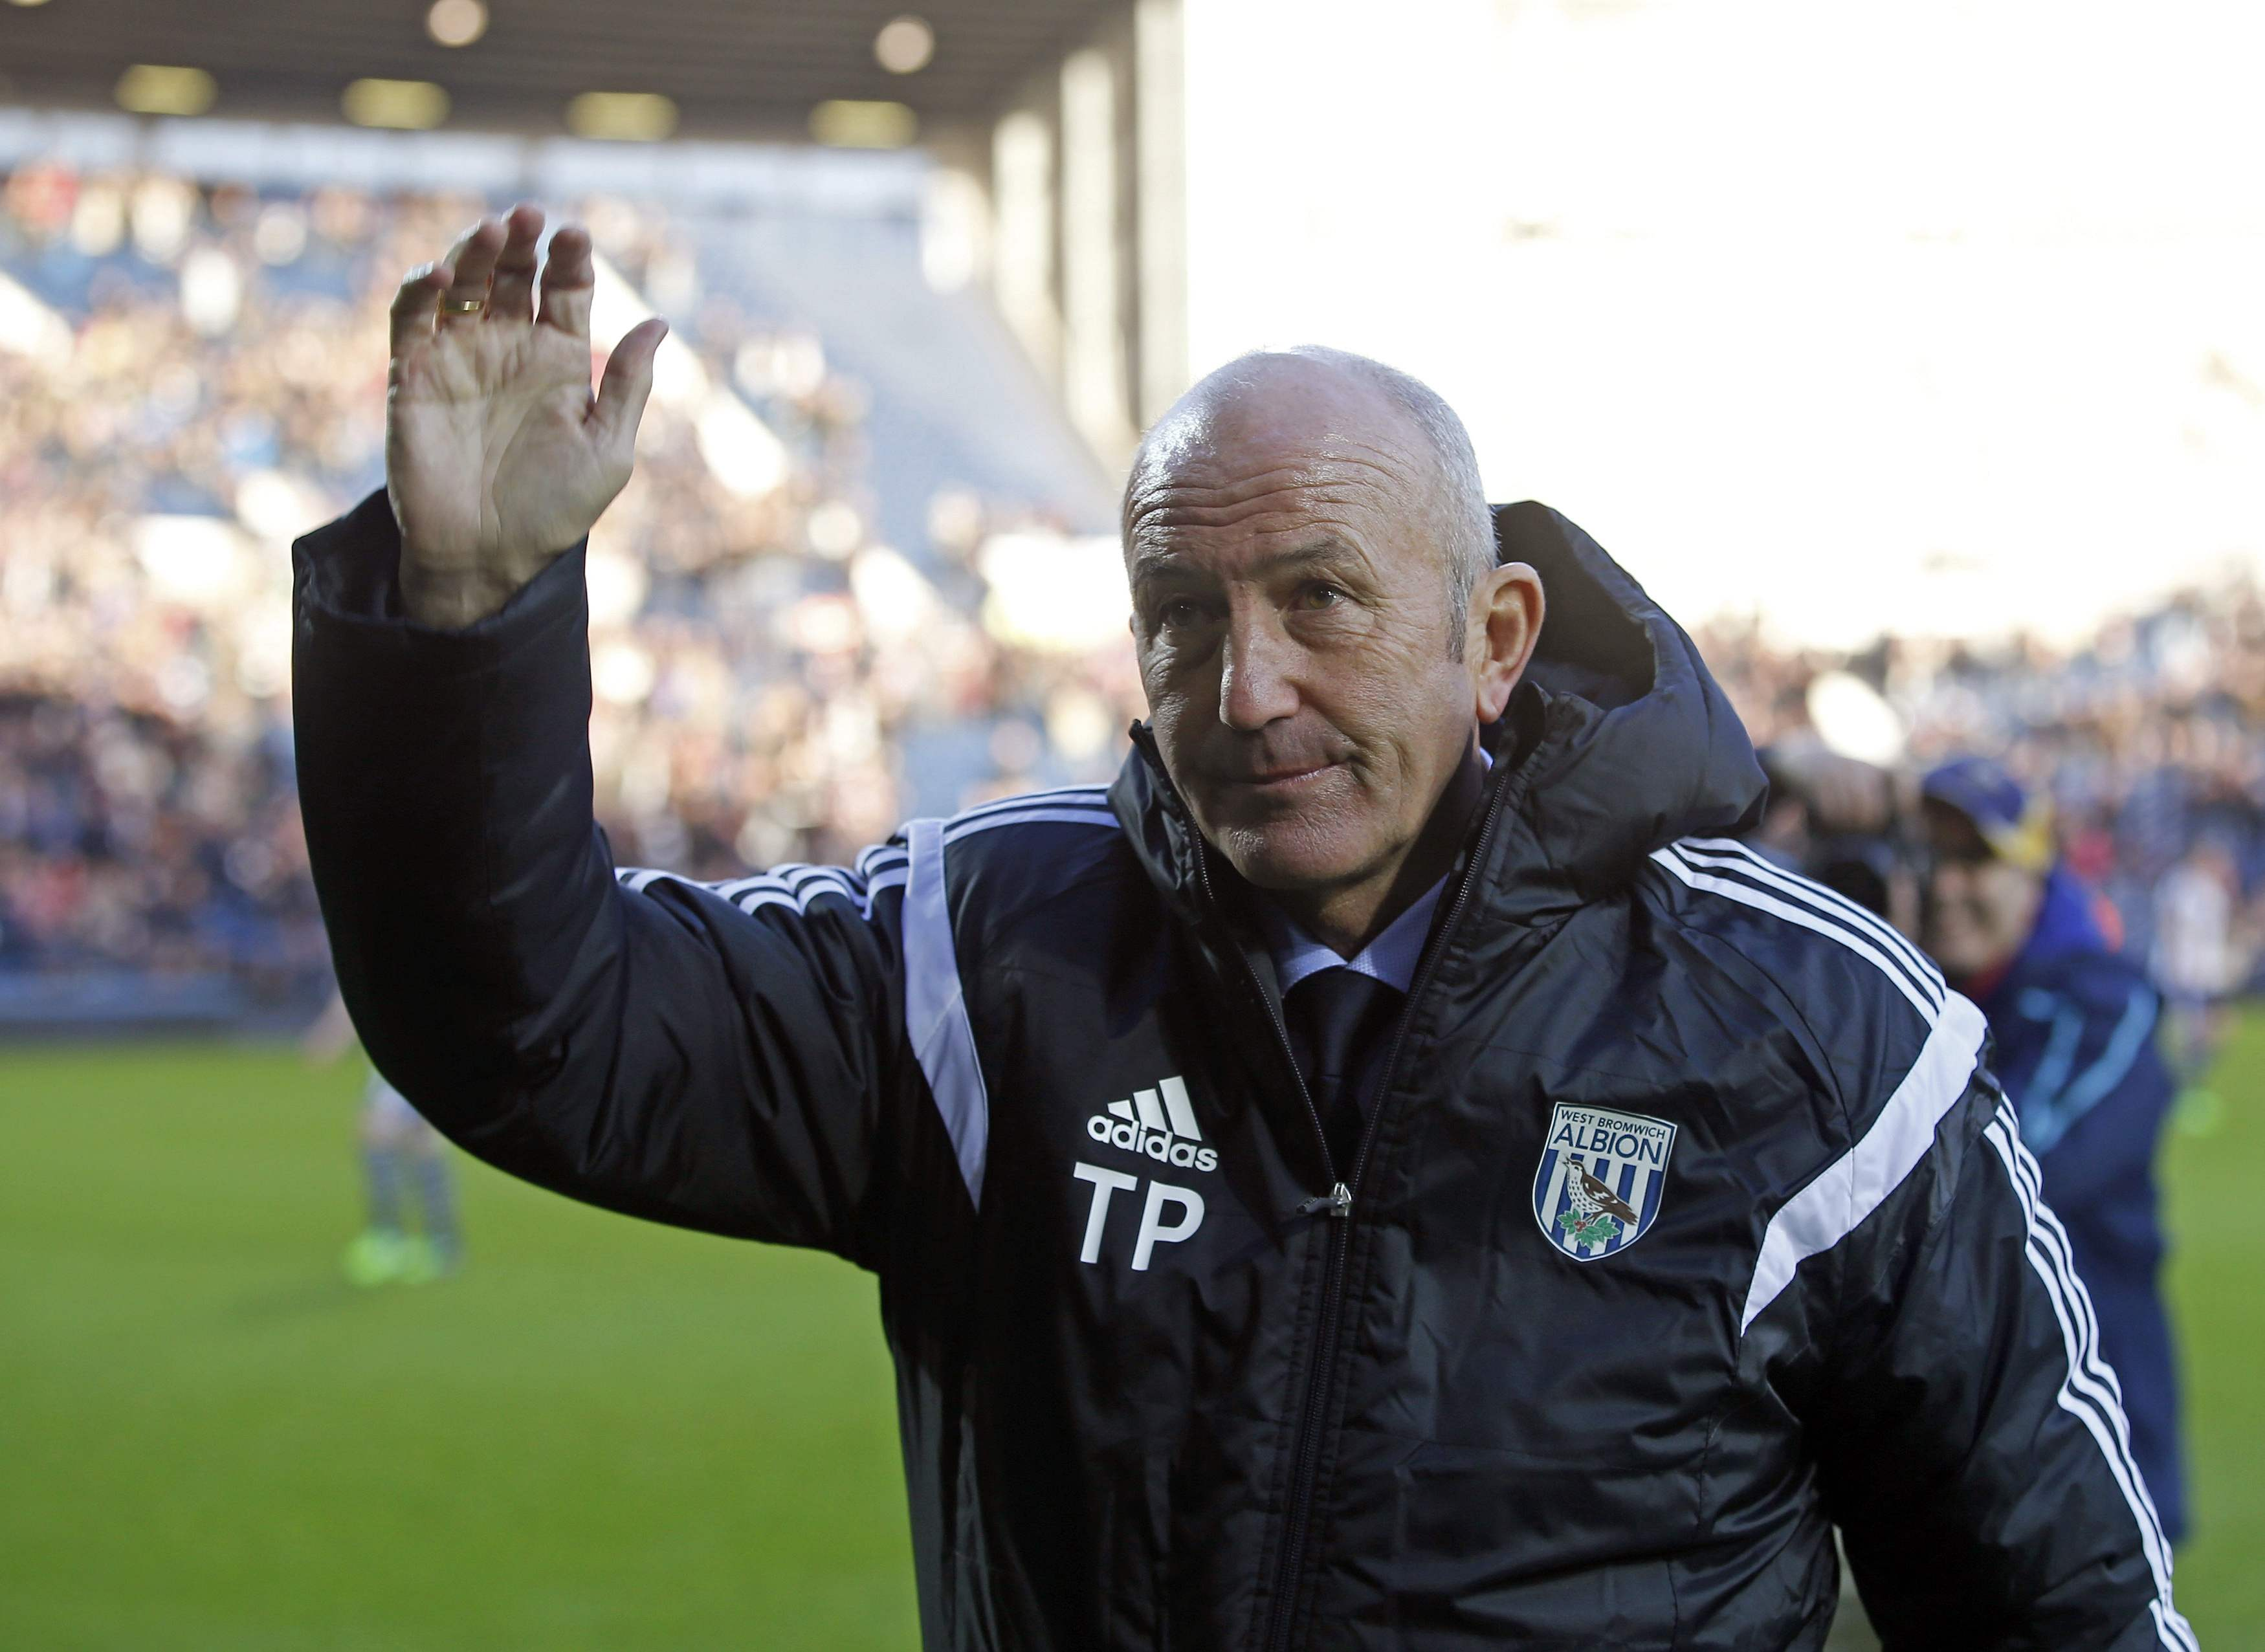 West Bromwich Albion's new manager Tony Pulis salutes the supporters before their English FA Cup third round soccer match against Gateshead in West Bromwich